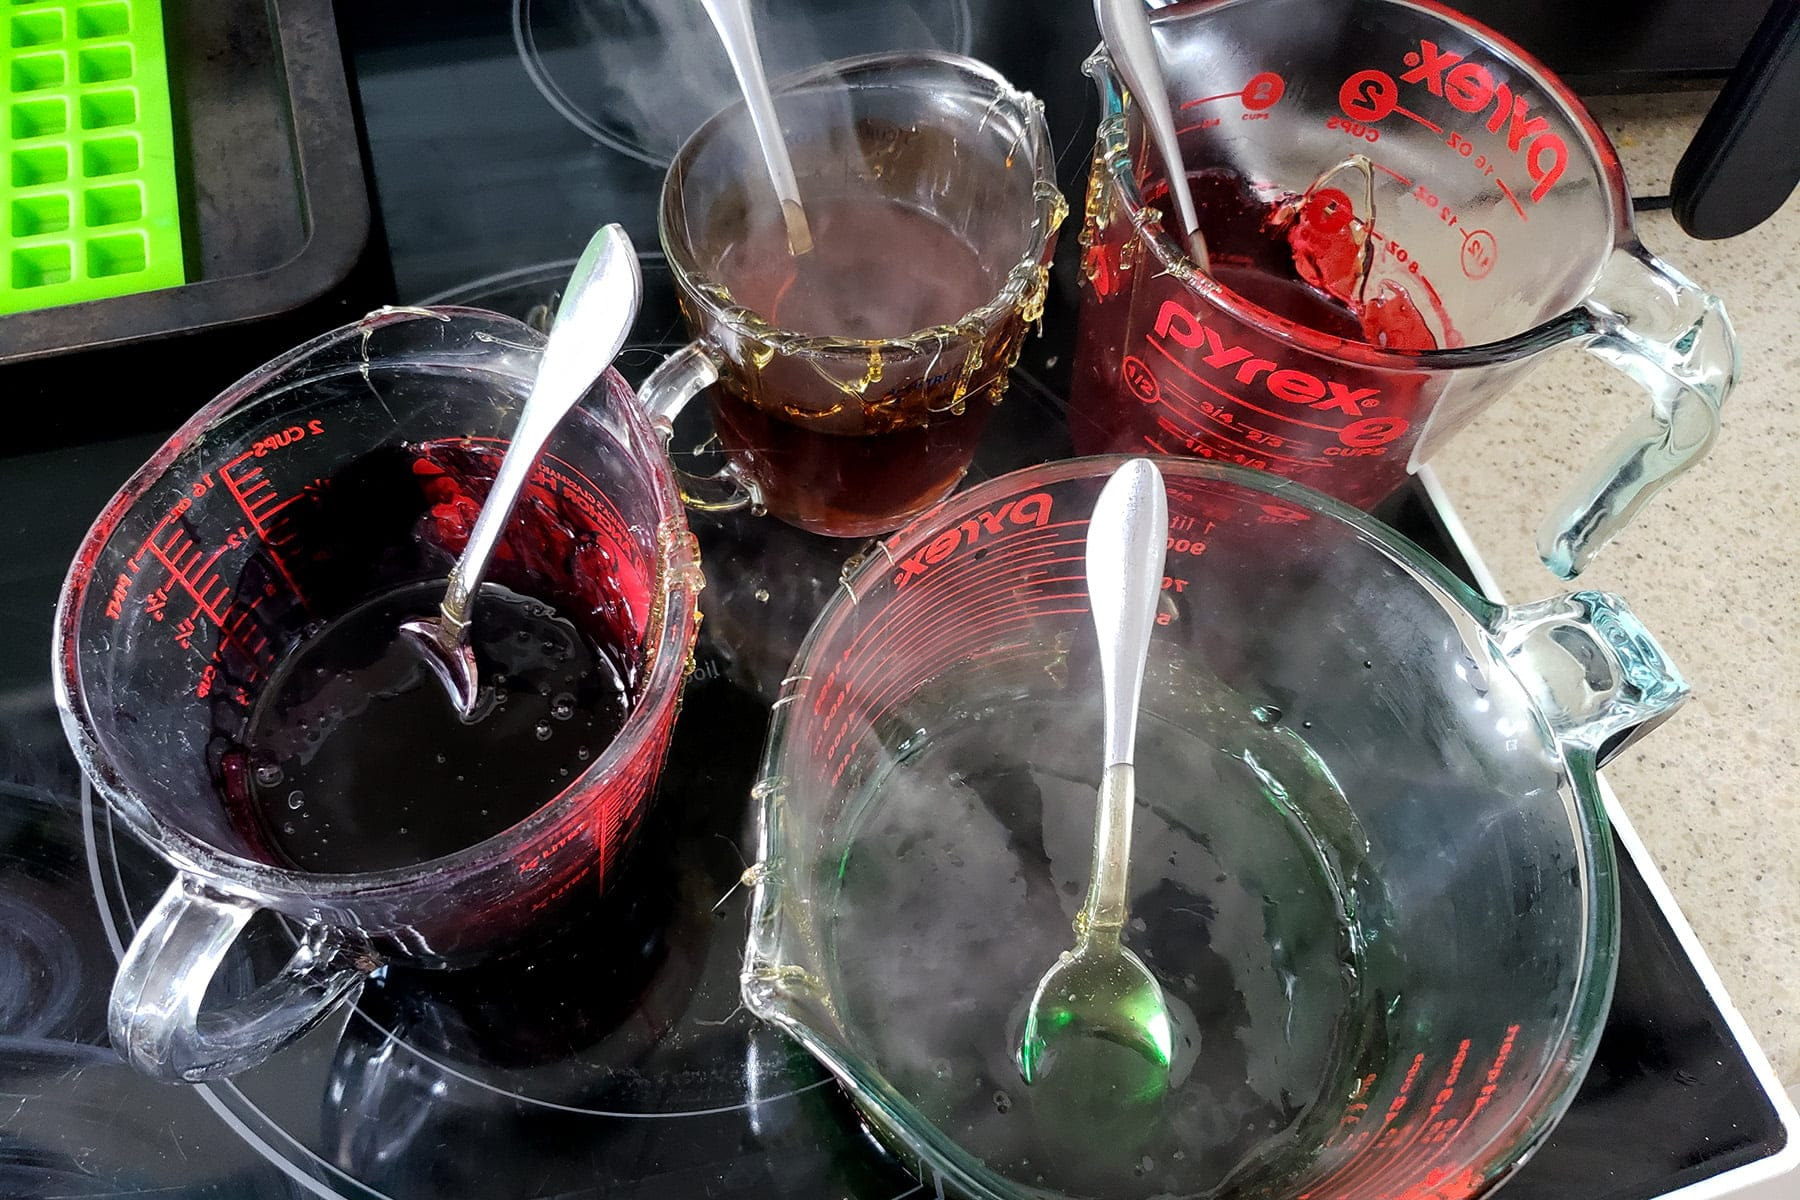 4 glass measuring cups are shown with small amounts of coloured liquid in each.